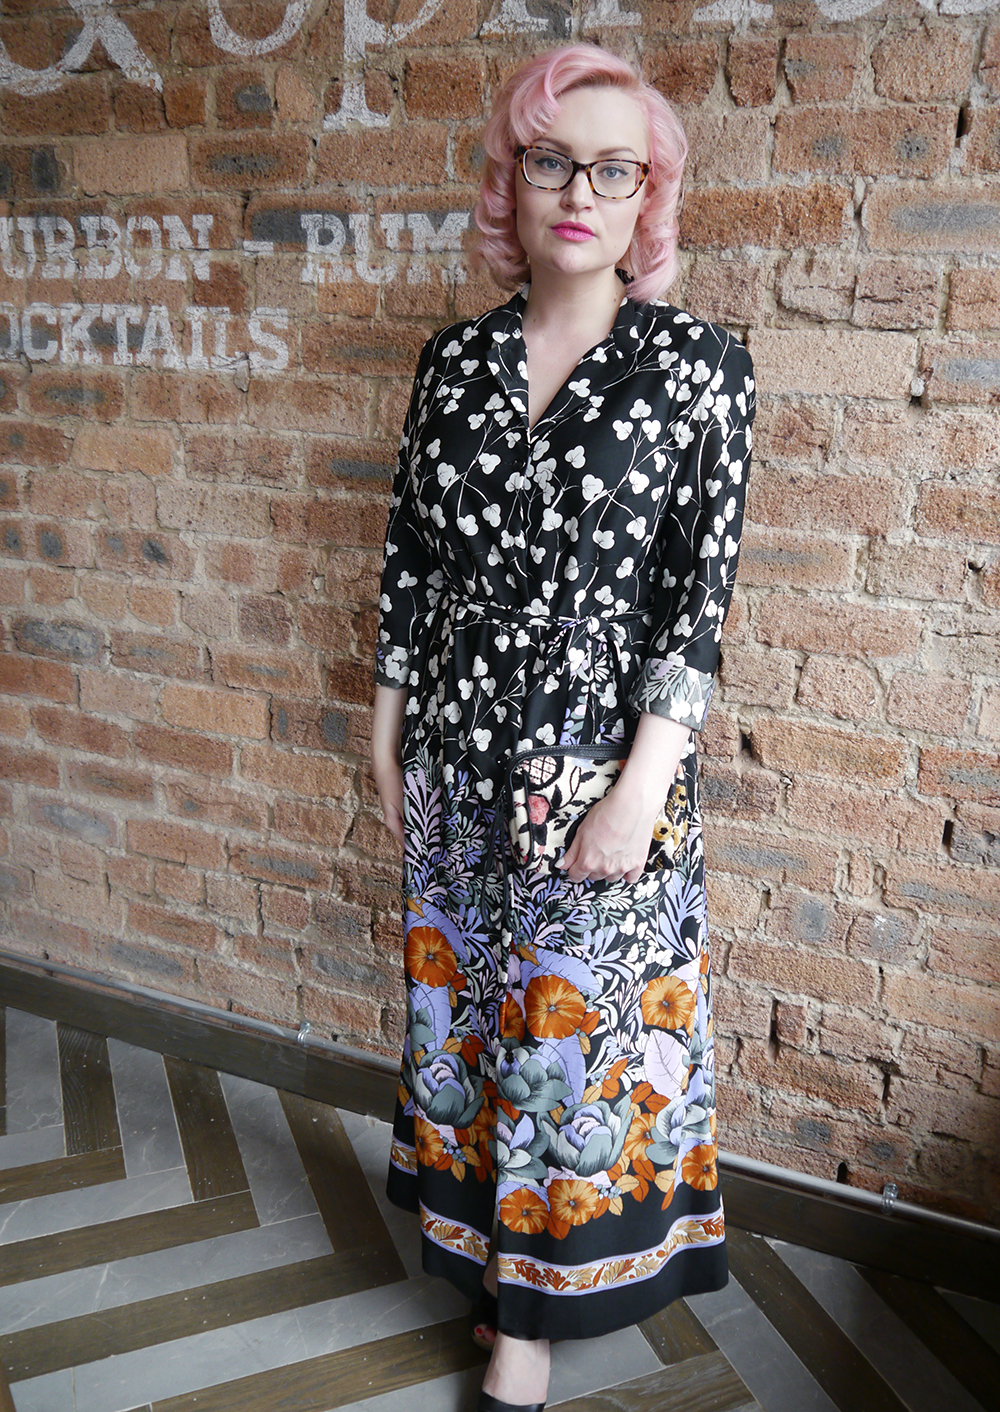 Wardrobe Conversations fashion blogger wearing 70s patterned maxi dress from Vintage Kilo Sale